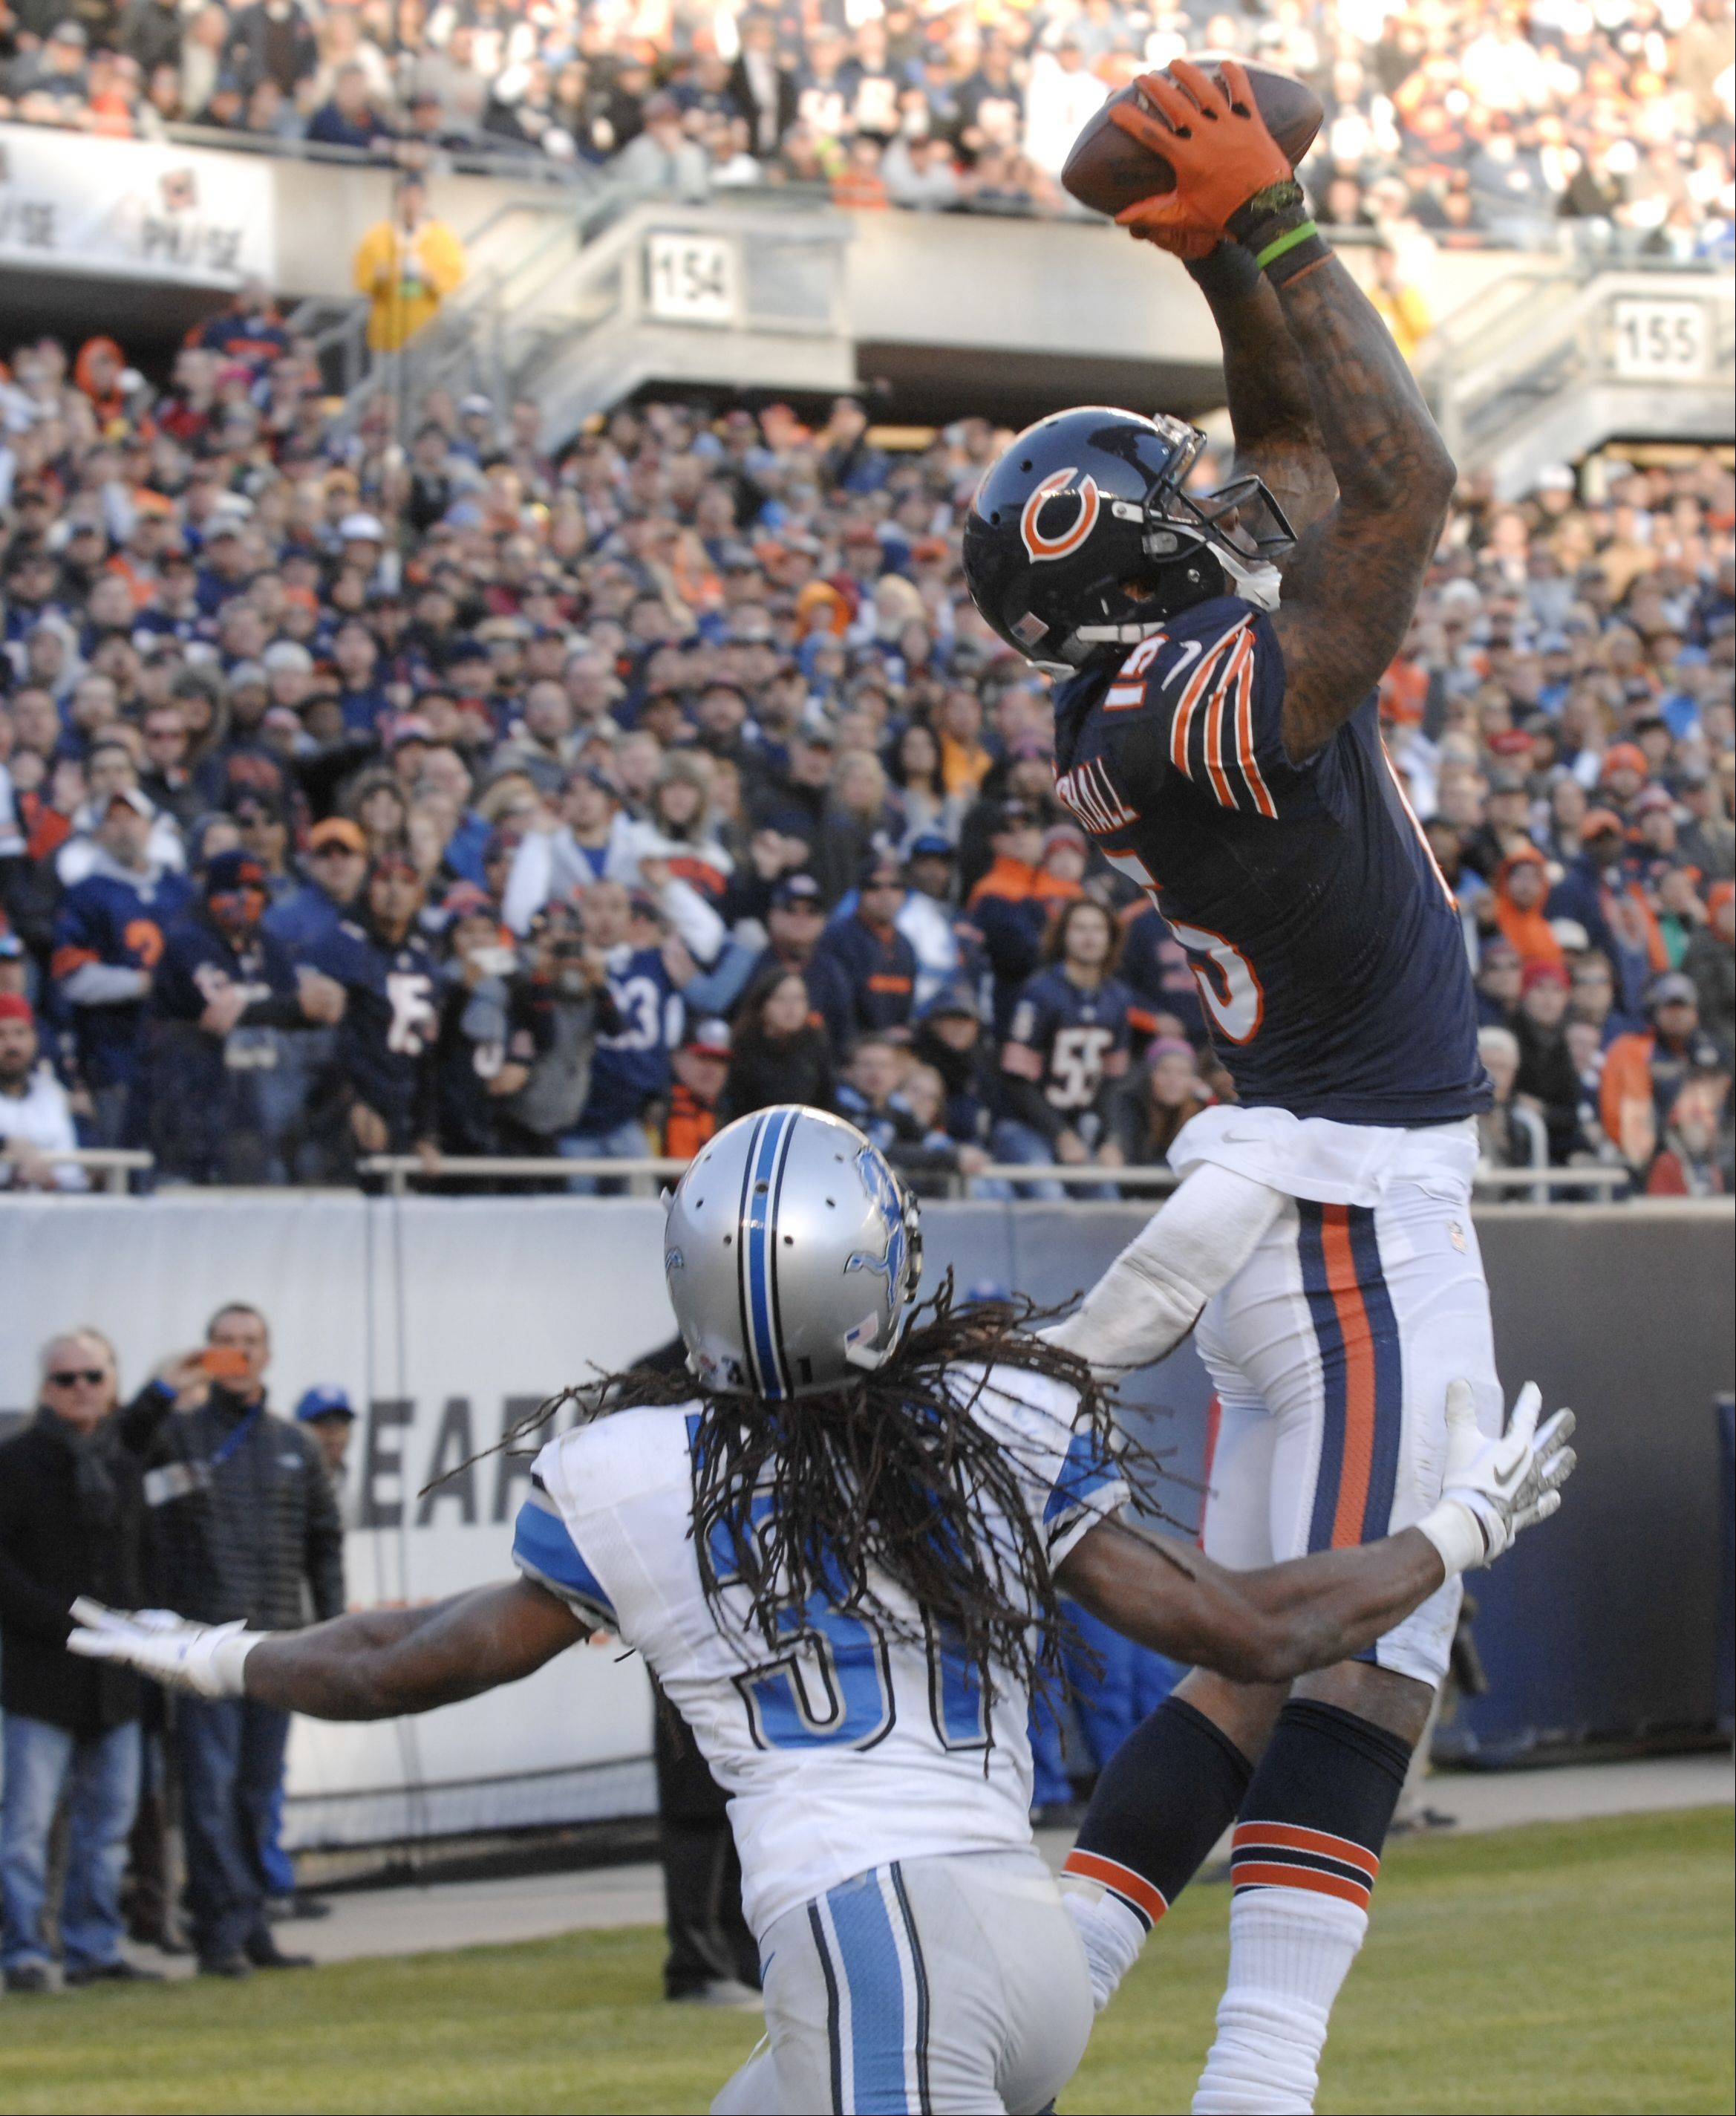 Over the last two seasons, no one has more NFL receptions (178) than Brandon Marshall, and his 19 TD catches are second in the league in that same time.